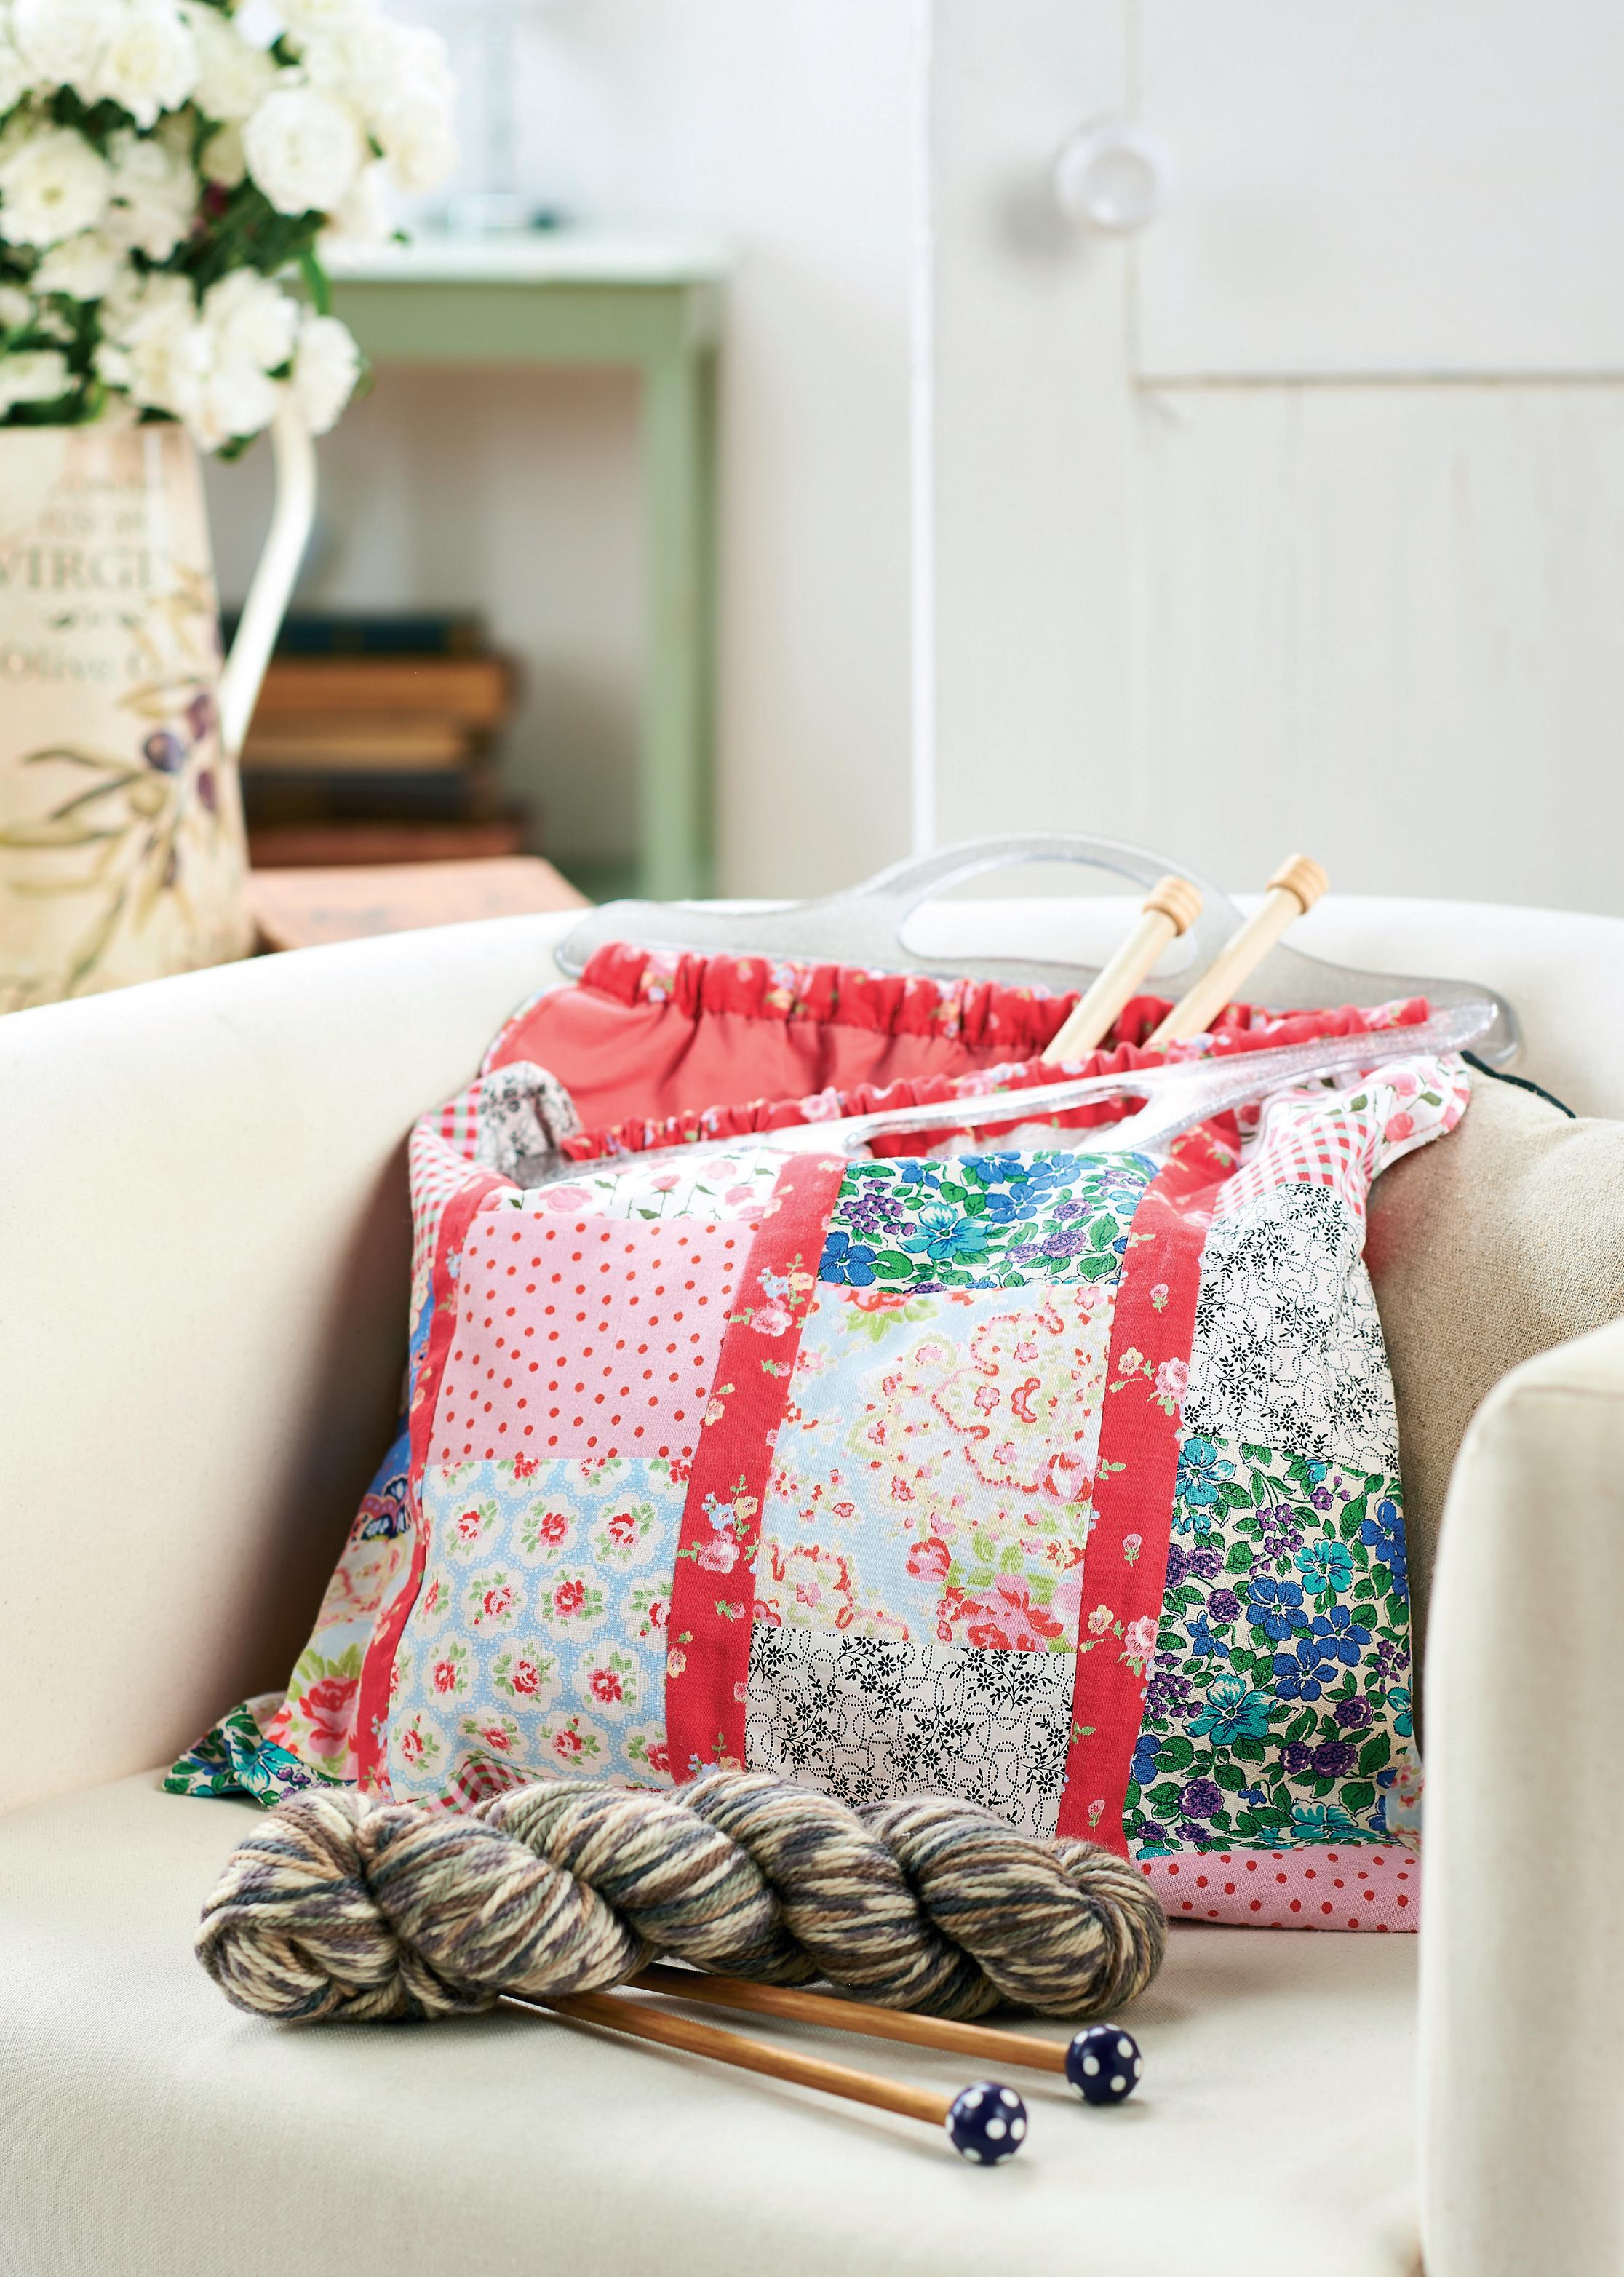 Patchwork Project Knitting Bag Free Sewing Patterns